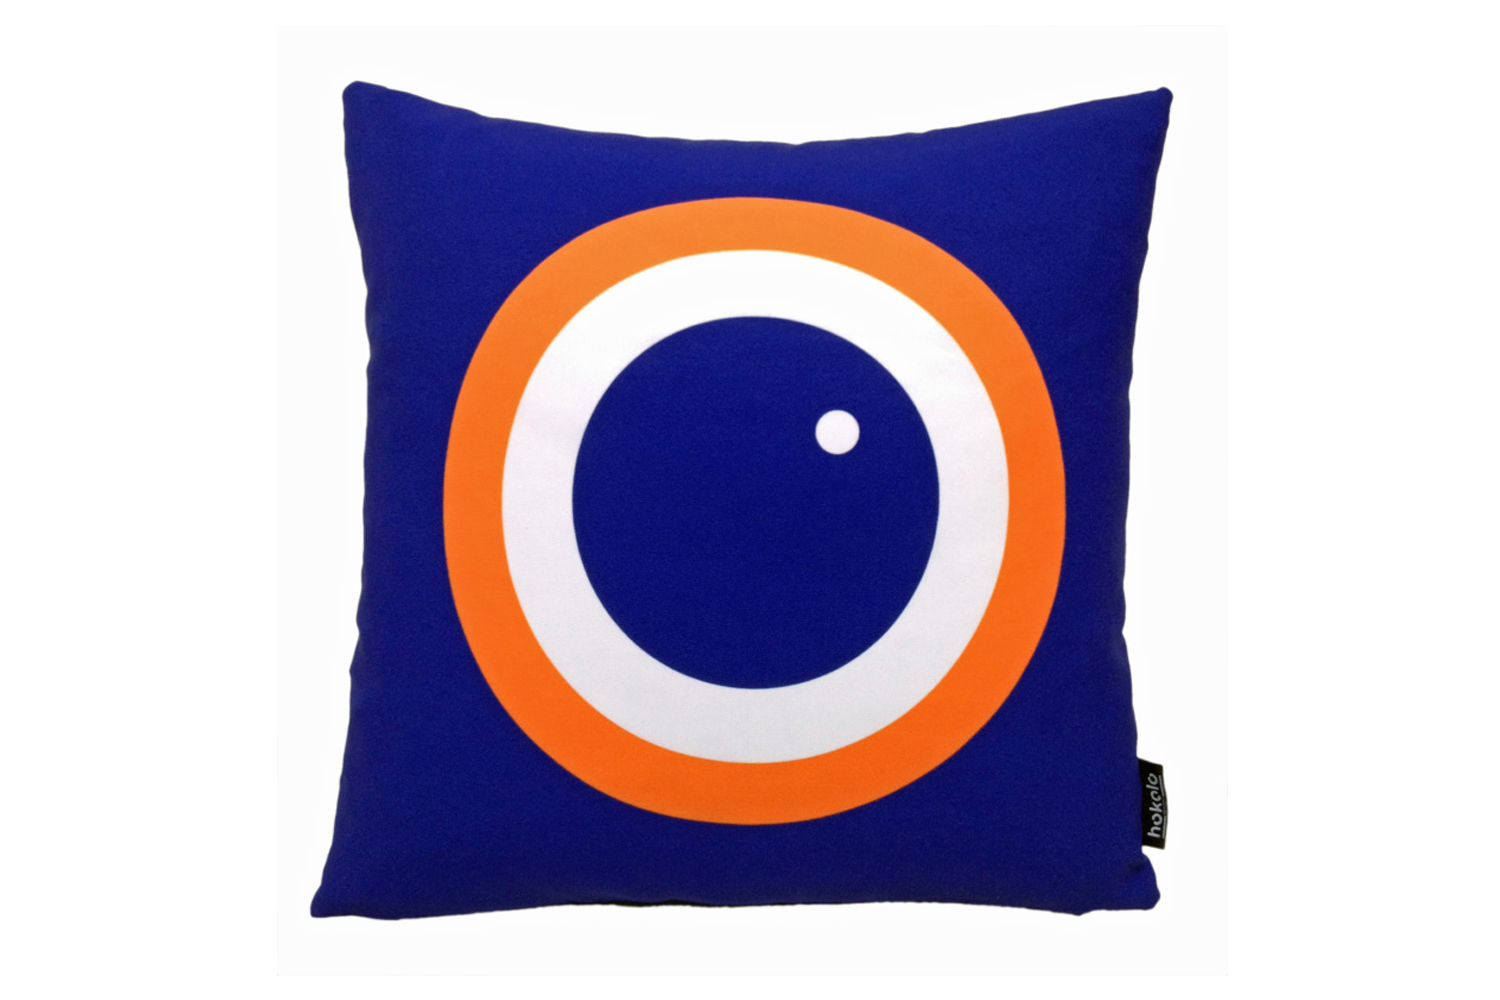 Printed Cushion Cover & Infill Pad, Blueberry